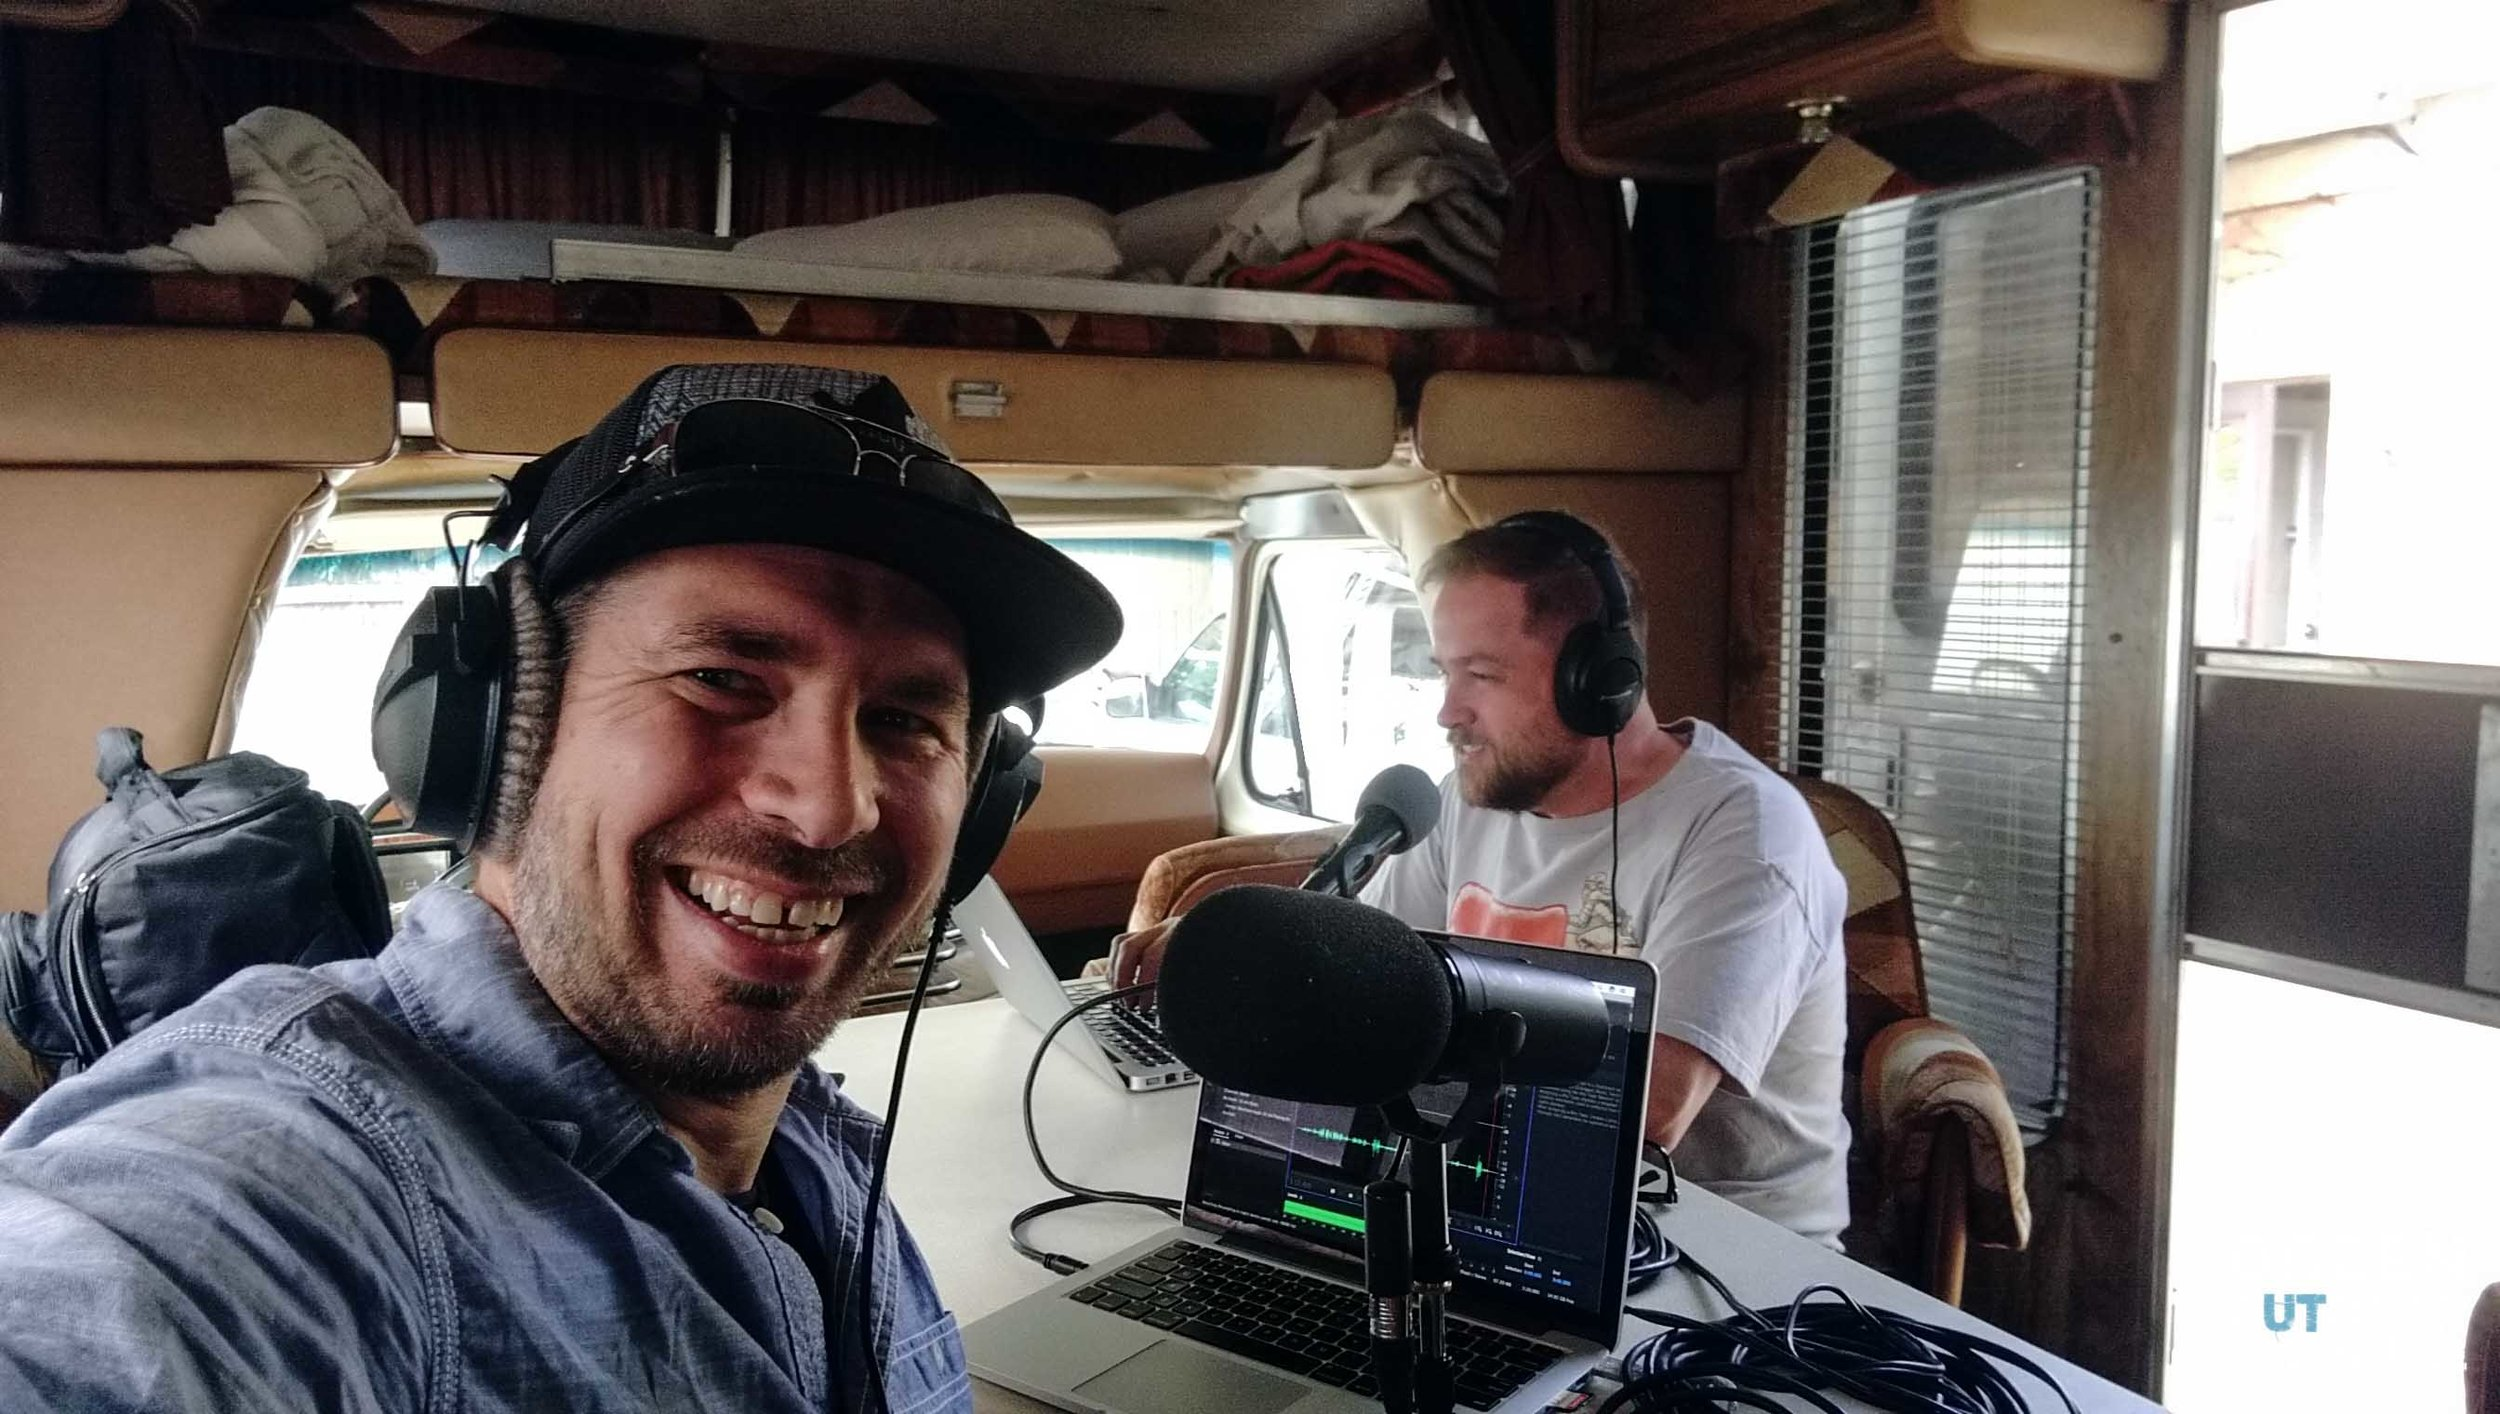 Breaking in the newly acquired 1981 Tioga RV with an OOA Show Podcast!